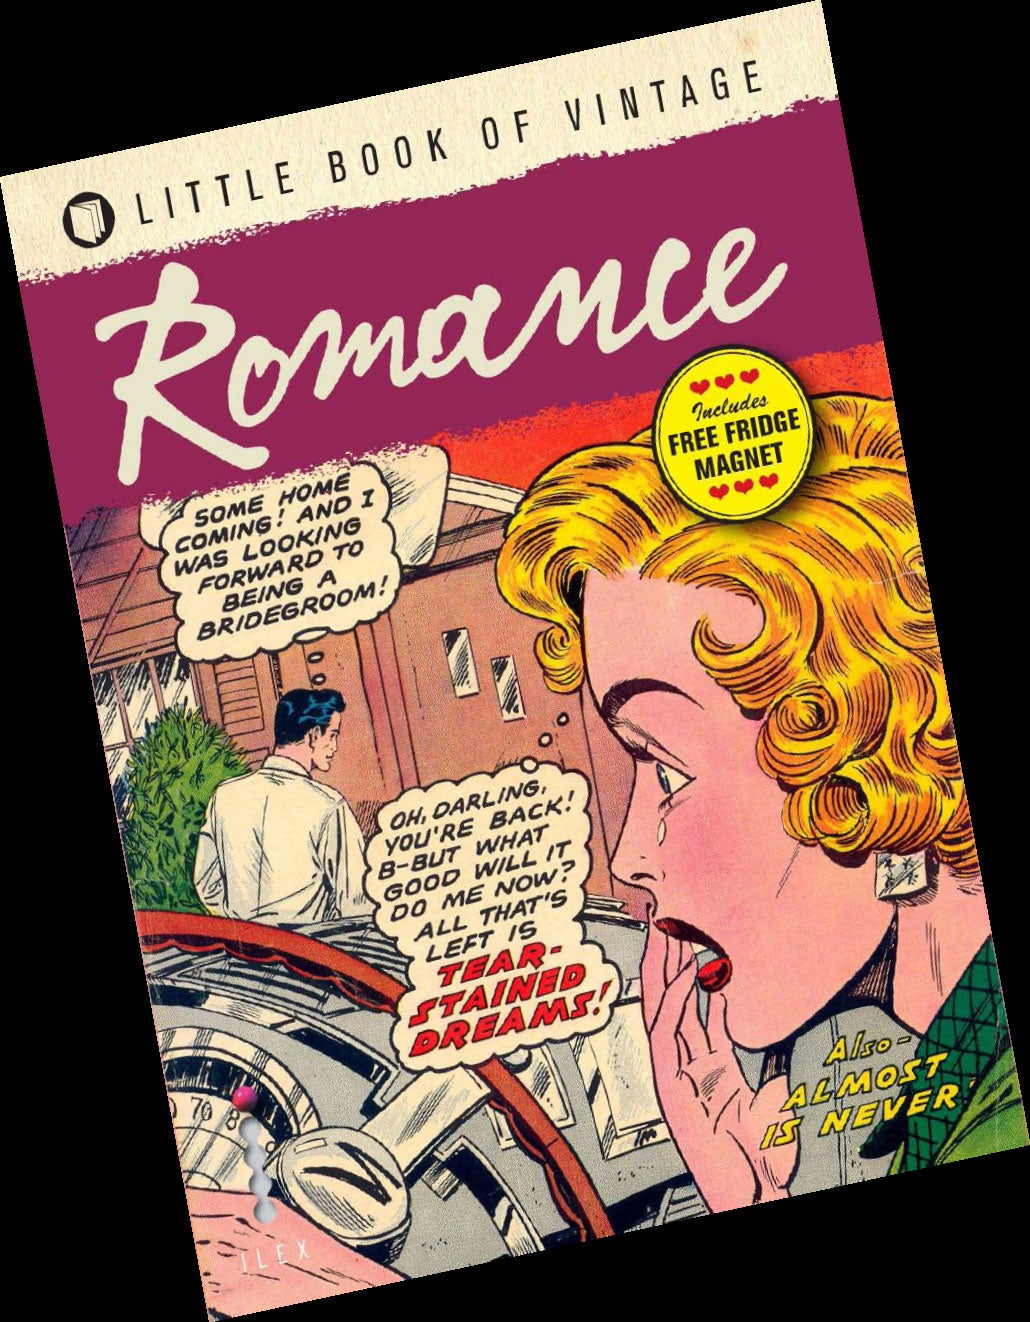 American Erotic Comics graphic novel: the erotic fiction that put the 'strip' into